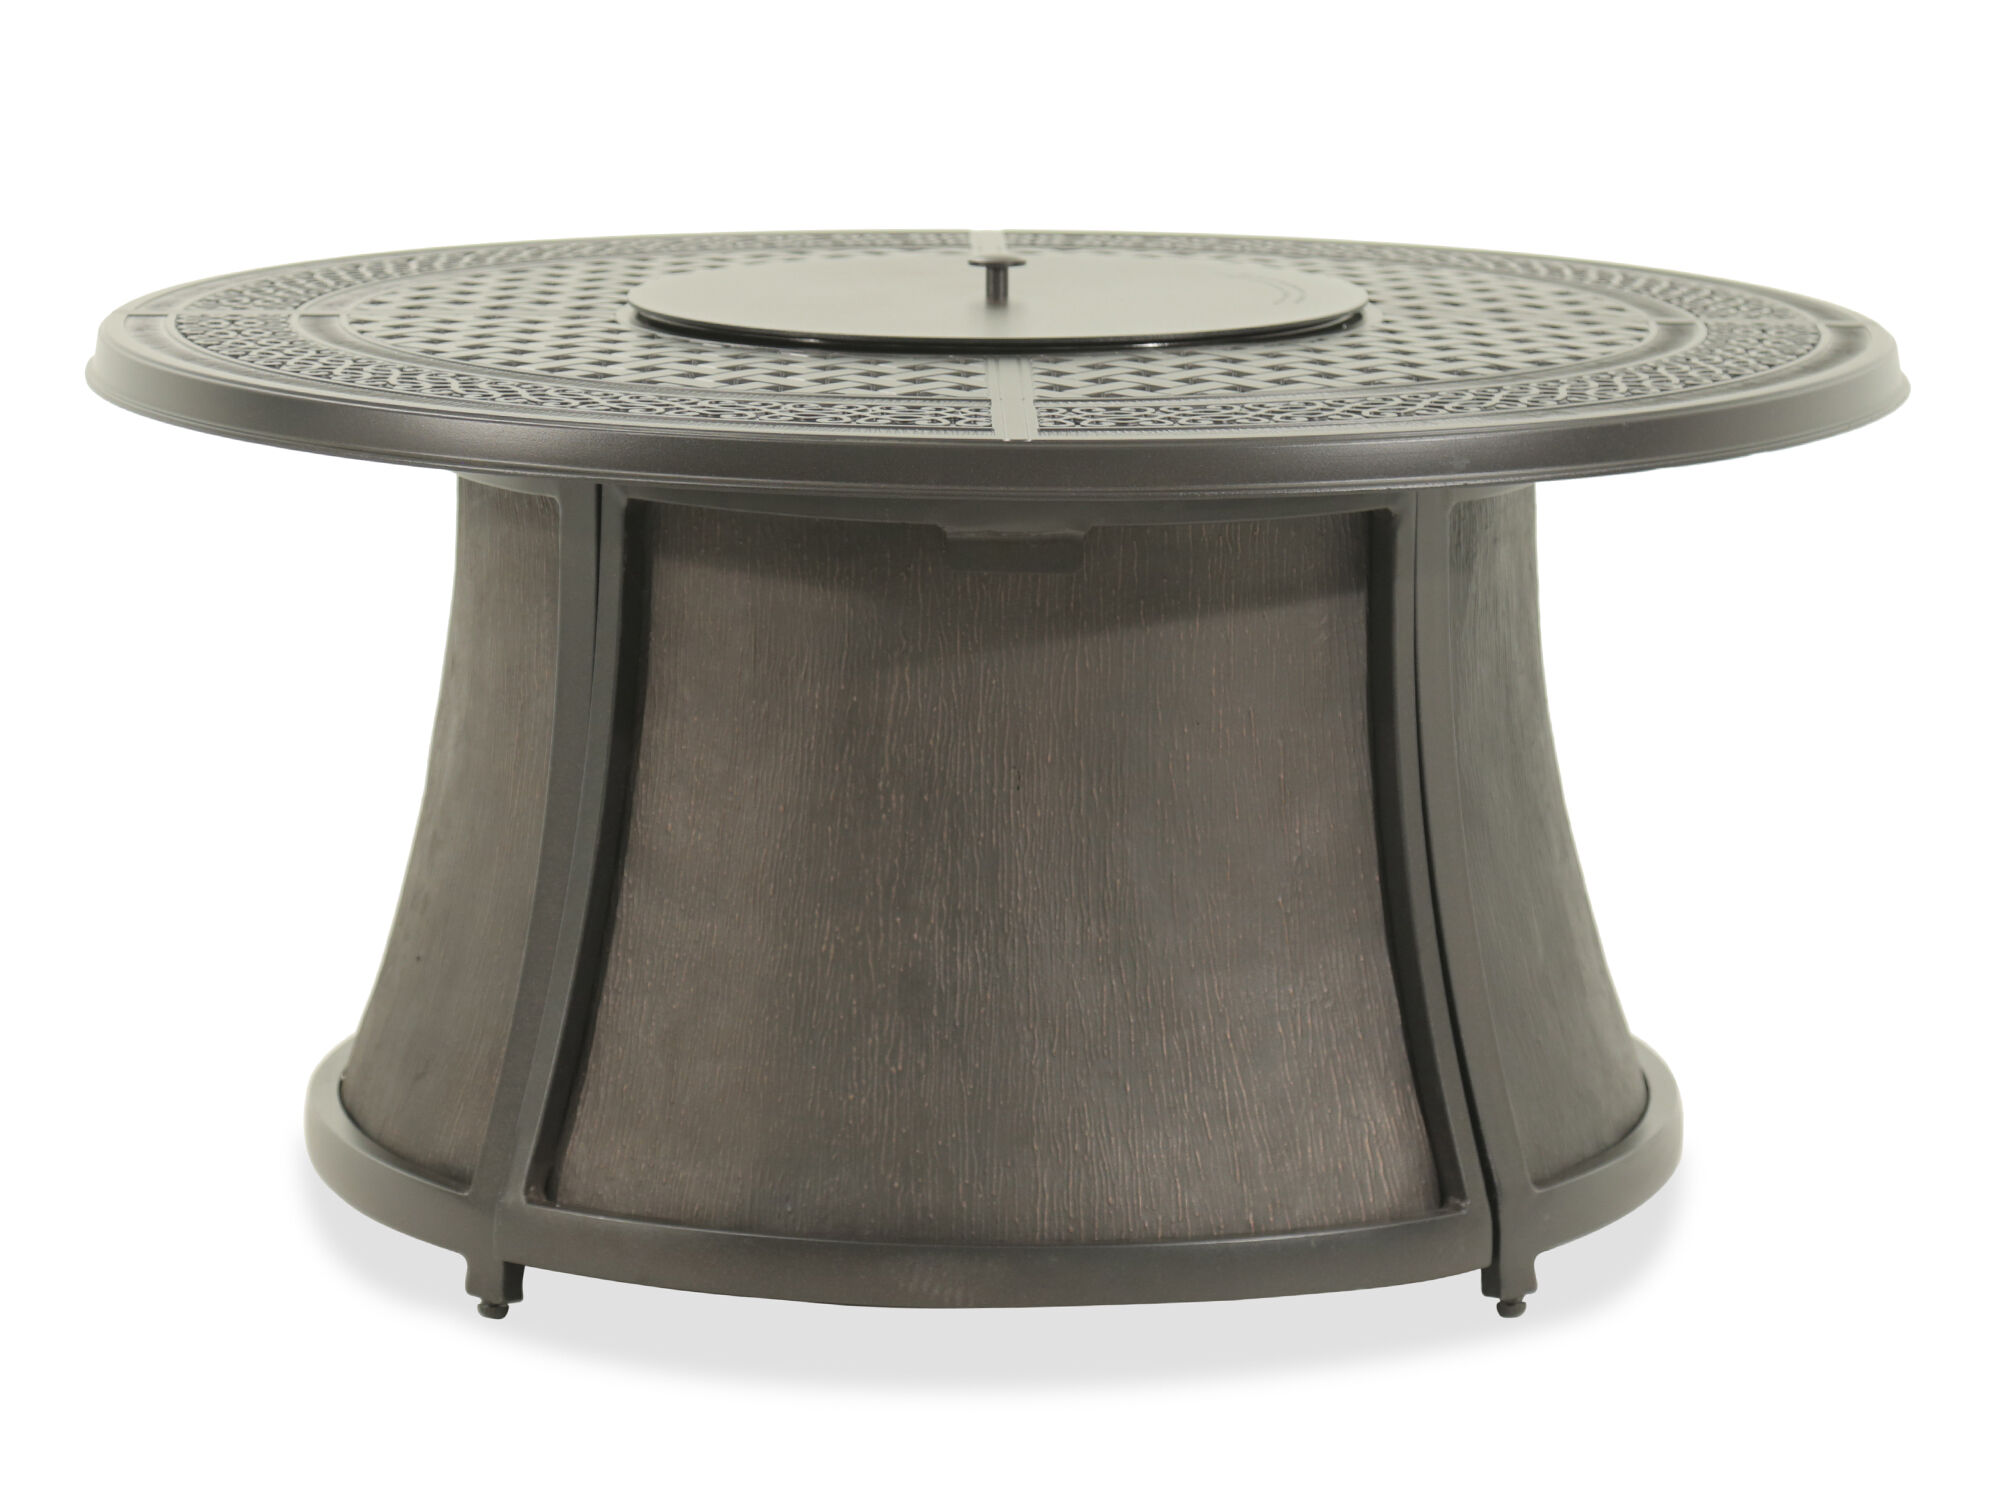 Lattice Cut Out Aluminum Fire Pit In Dark Brown Mathis Brothers Furniture